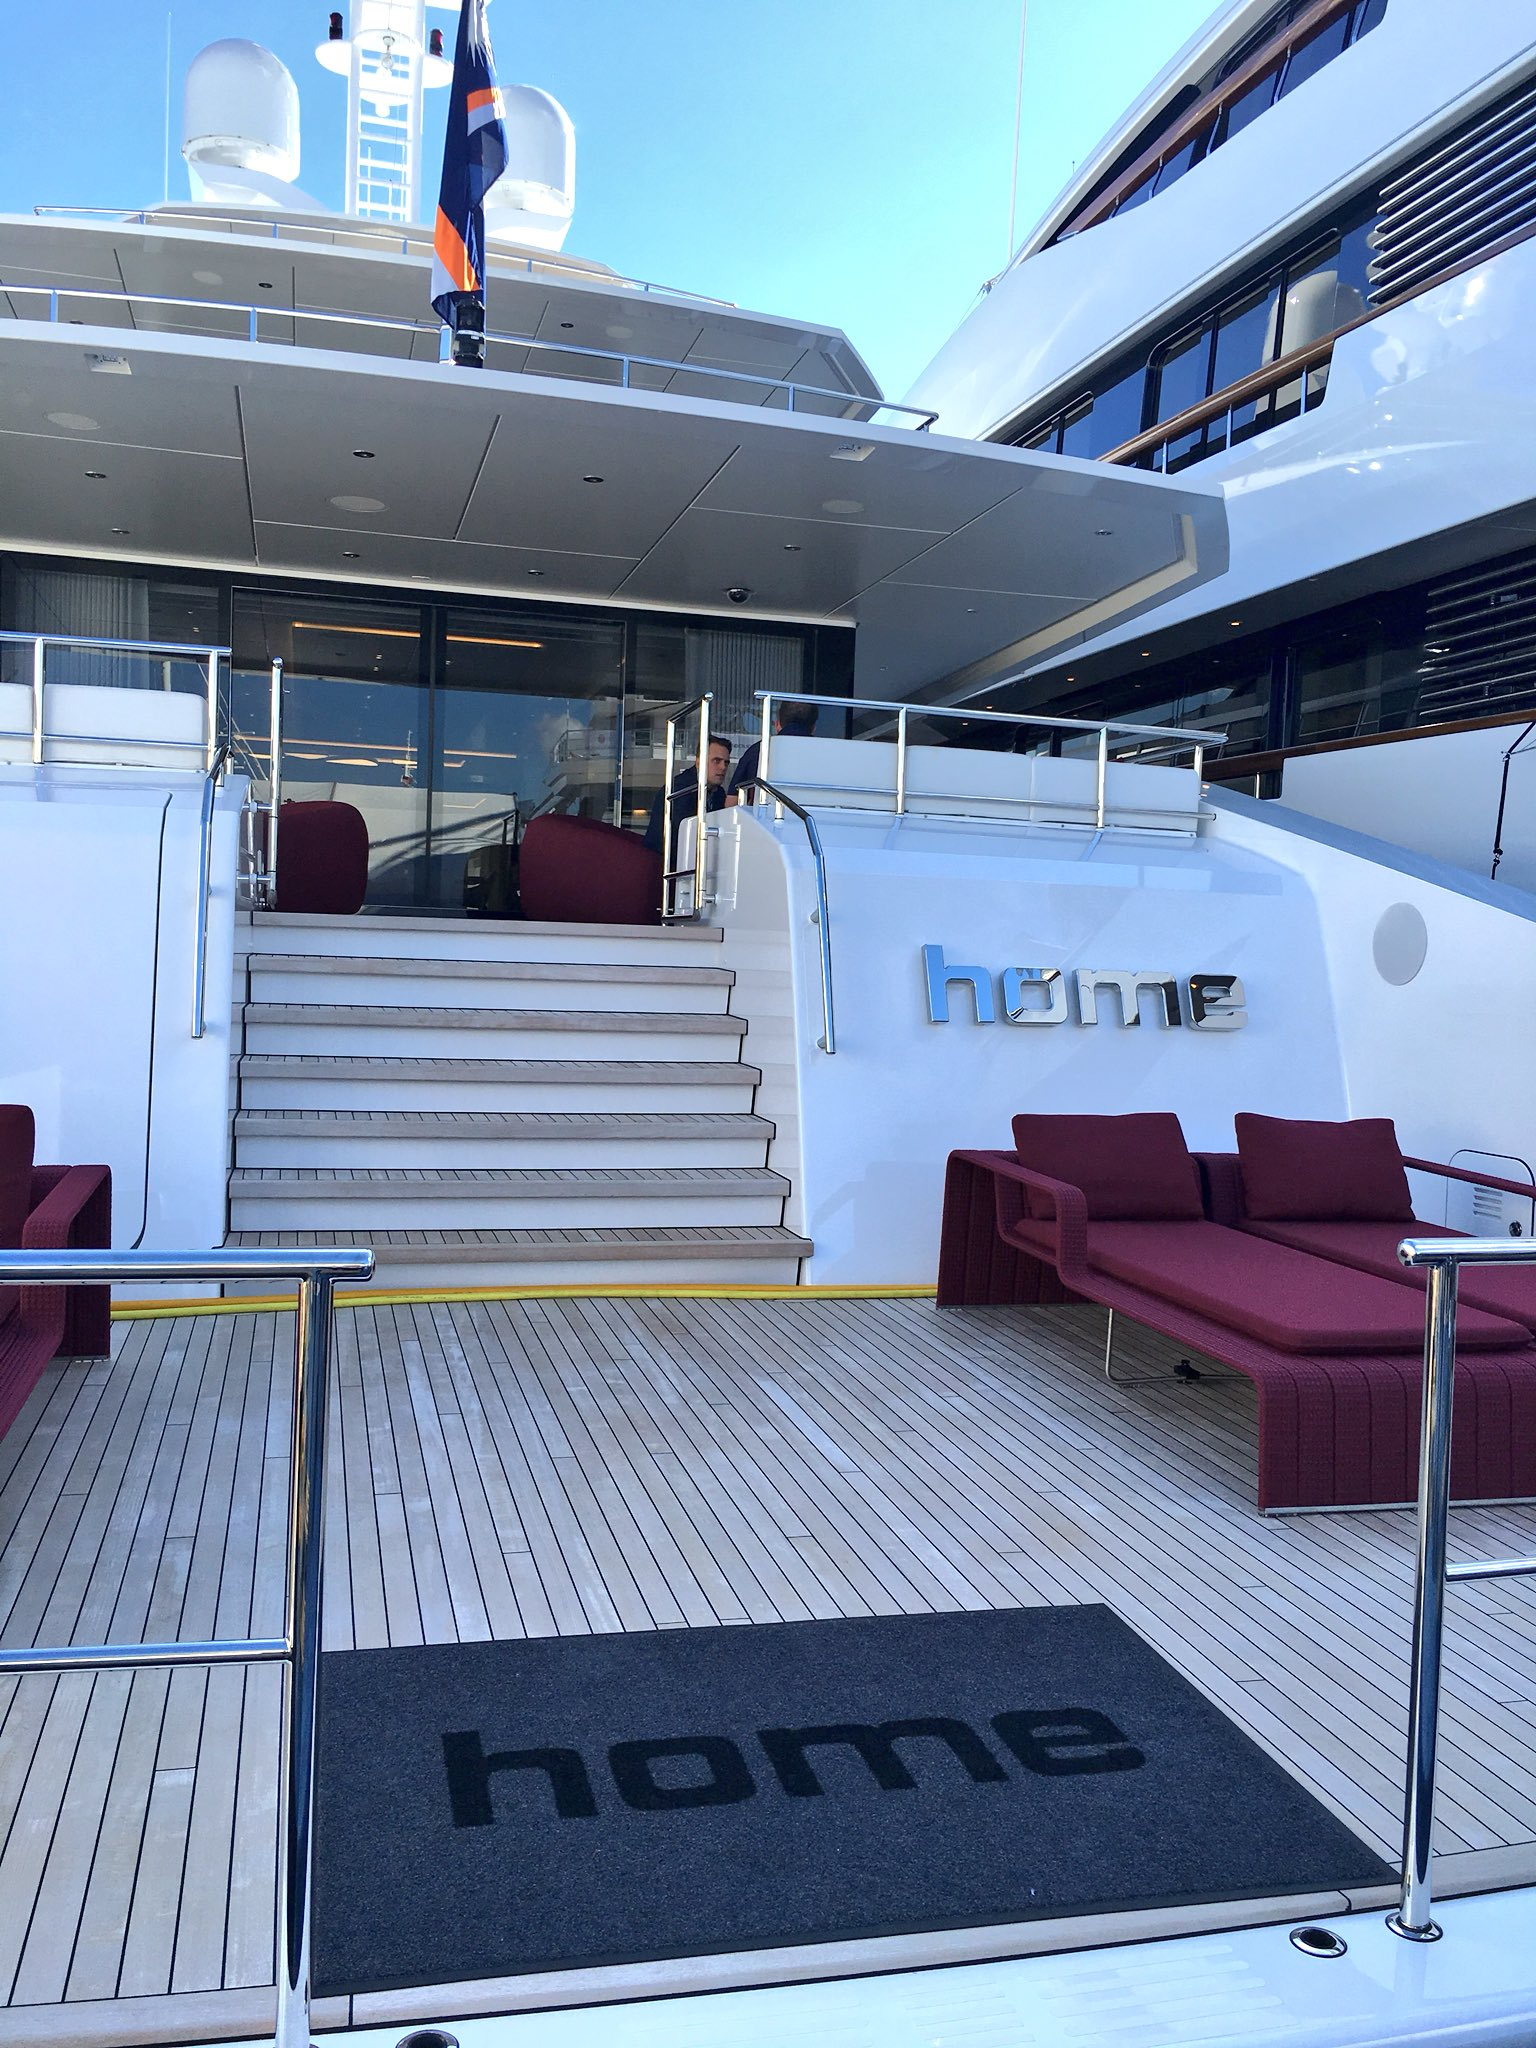 We took a tour of @Heesen_Yachts' 164-footer Home. Keep your eyes peeled for video from on board! #FLIBS2017 #athomewithheesen https://t.co/KNBjVFvJ0E